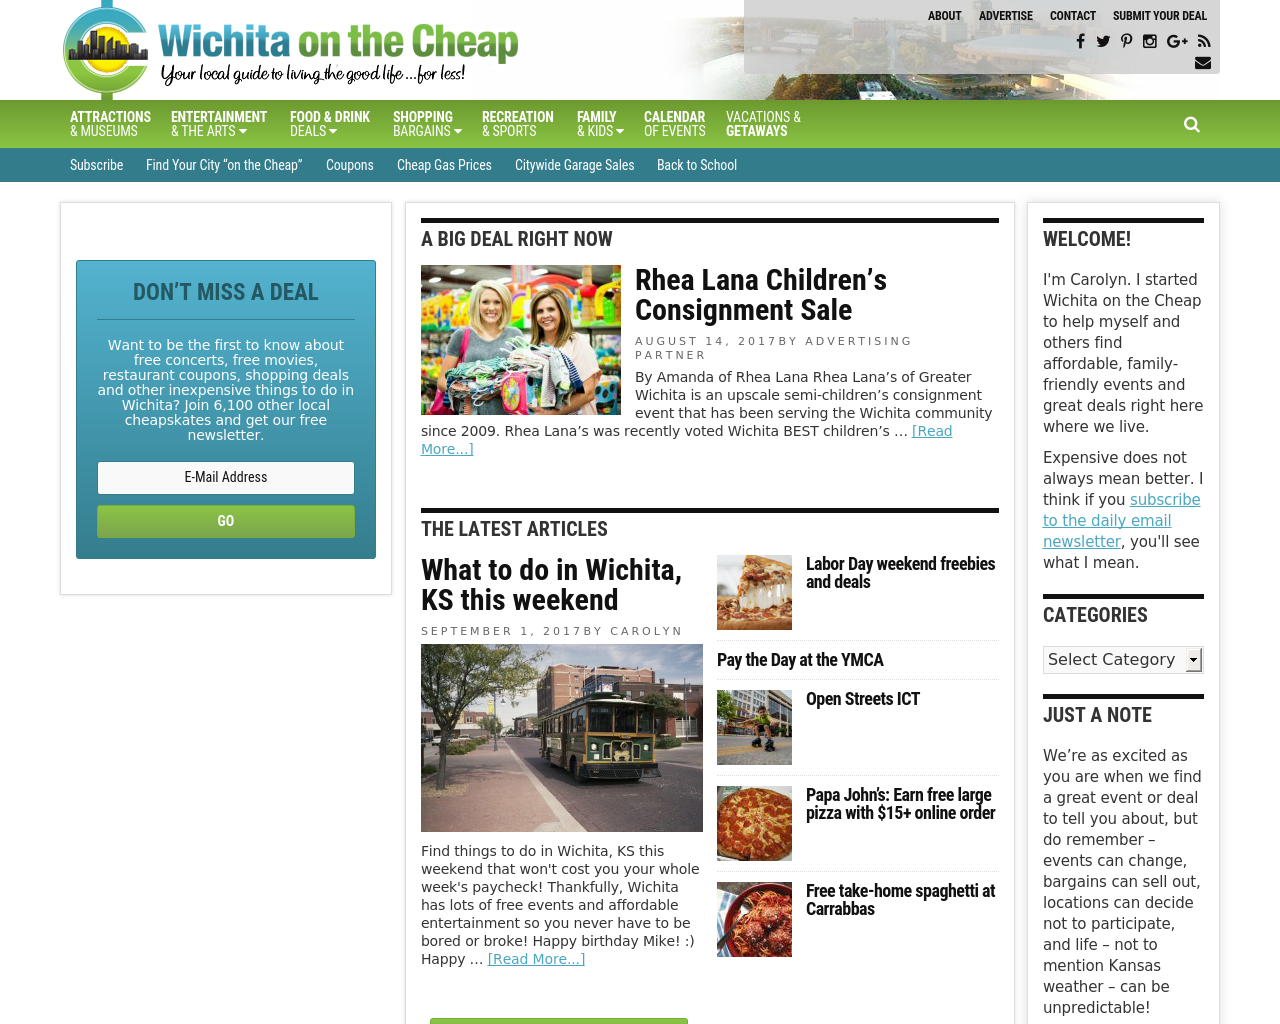 Wichita-on-the-Cheap-Advertising-Reviews-Pricing